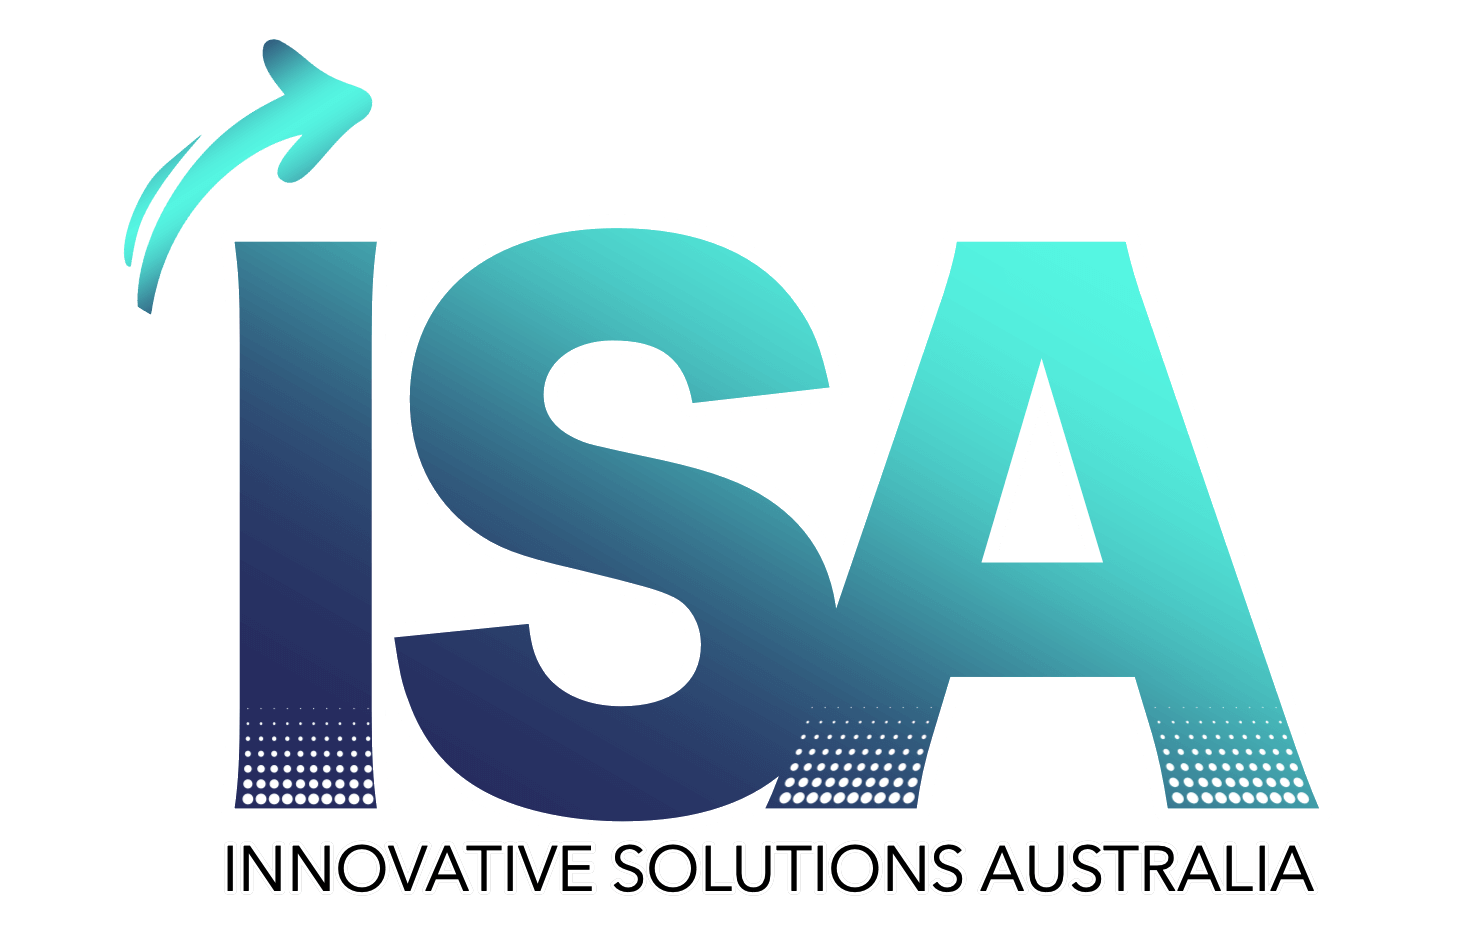 Innovative Solutions Australia